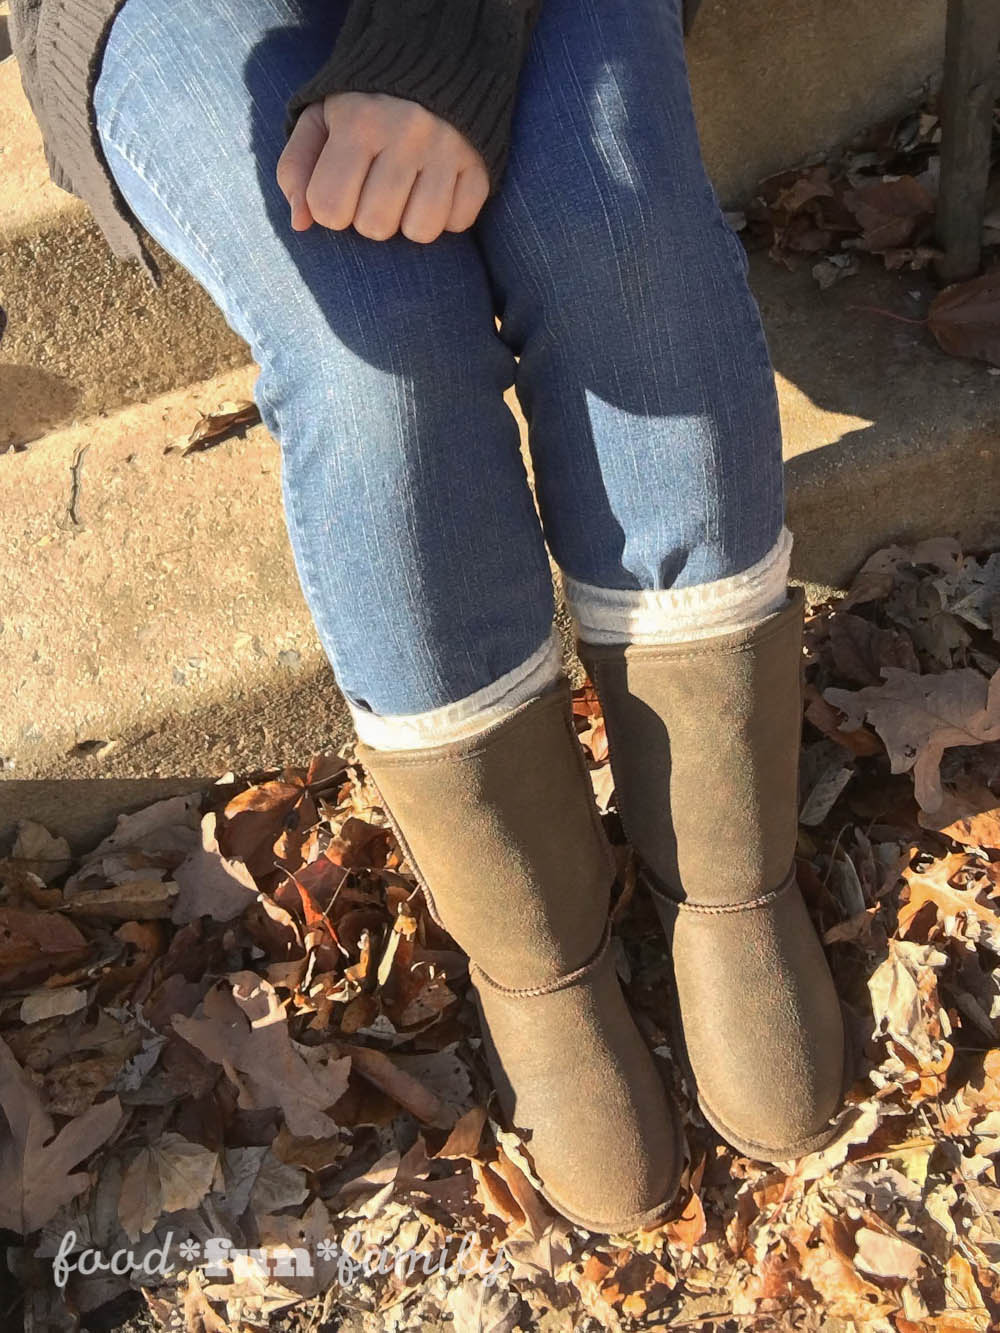 Boot Season - My new Bearpaw Boshie boots from Famous Footwear - Food Fun Family